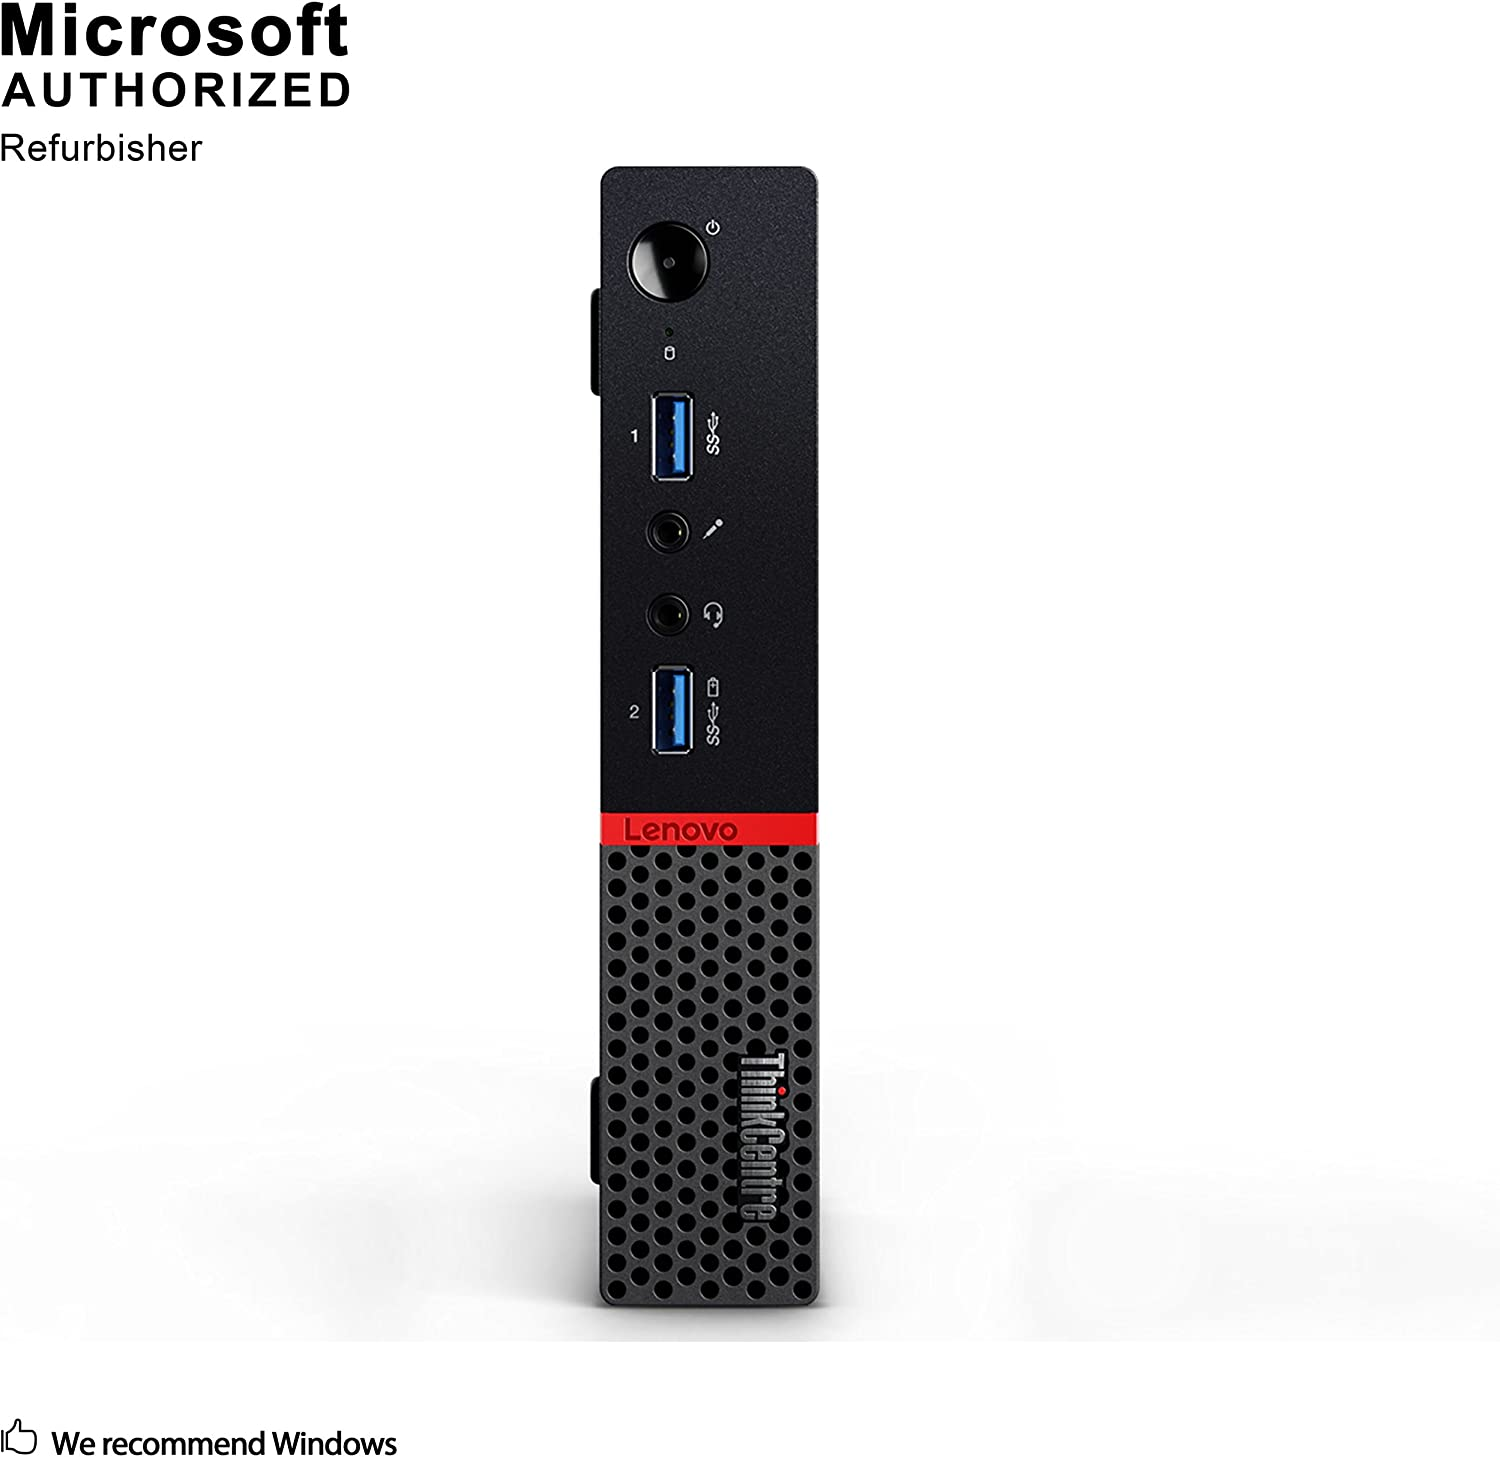 Lenovo ThinkCentre M900 Tiny Business PC, Intel Quad Core i5 6600T up to 3.5GHz, 8G DDR4, 512G SSD, WiFi, BT 4.0, Windows 10 Pro 64-Multi-Language Support English/Spanish/French(Renewed)